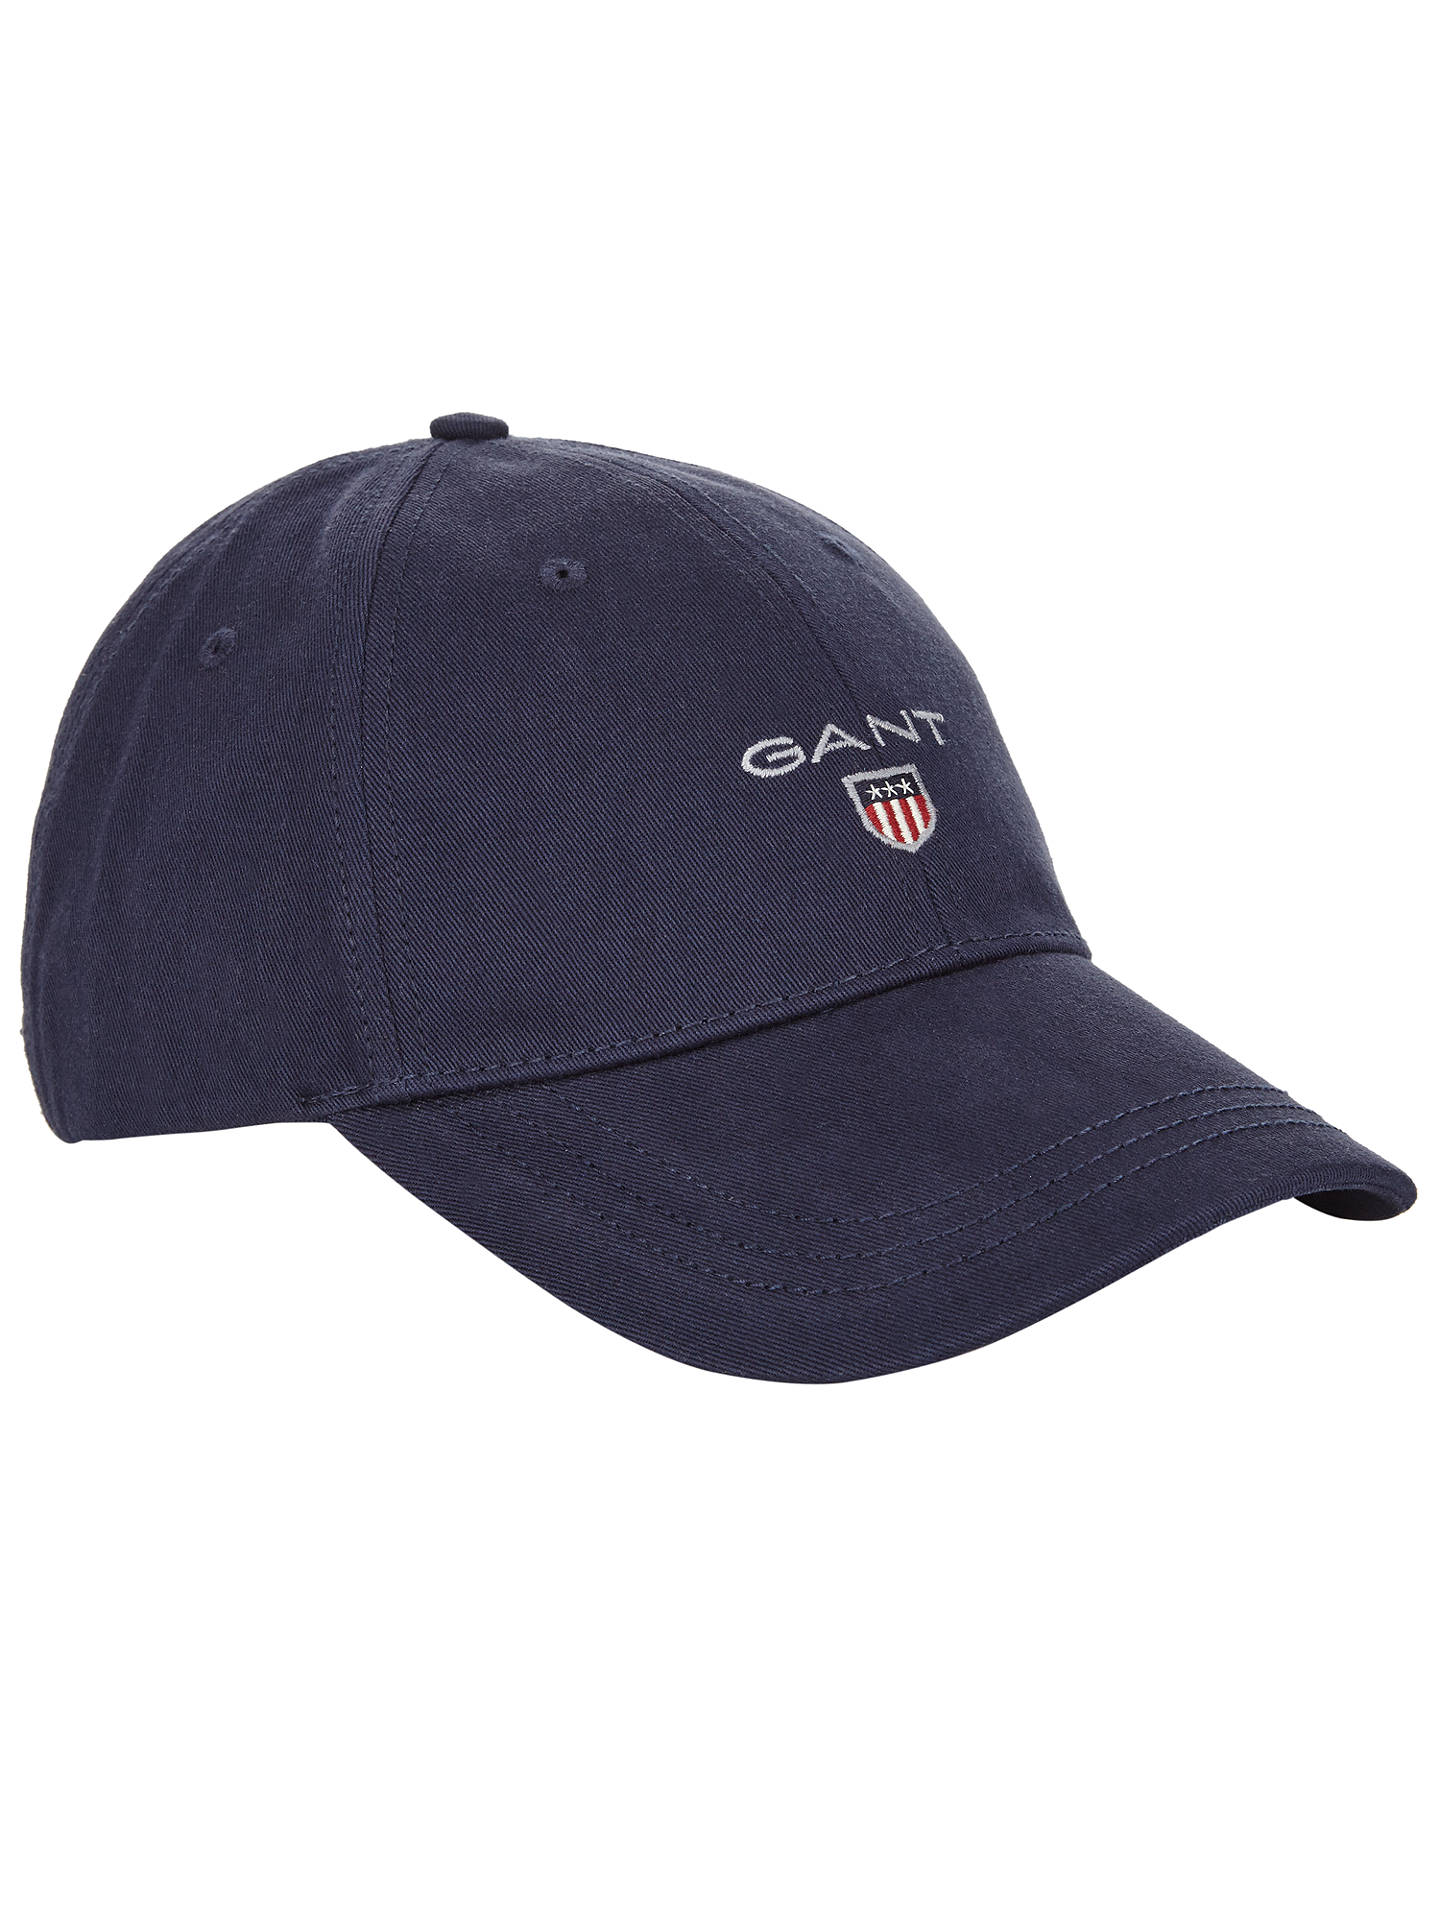 63e636a9 Buy Gant Cotton Twill Baseball Cap, One Size, Navy Online at johnlewis.com  ...